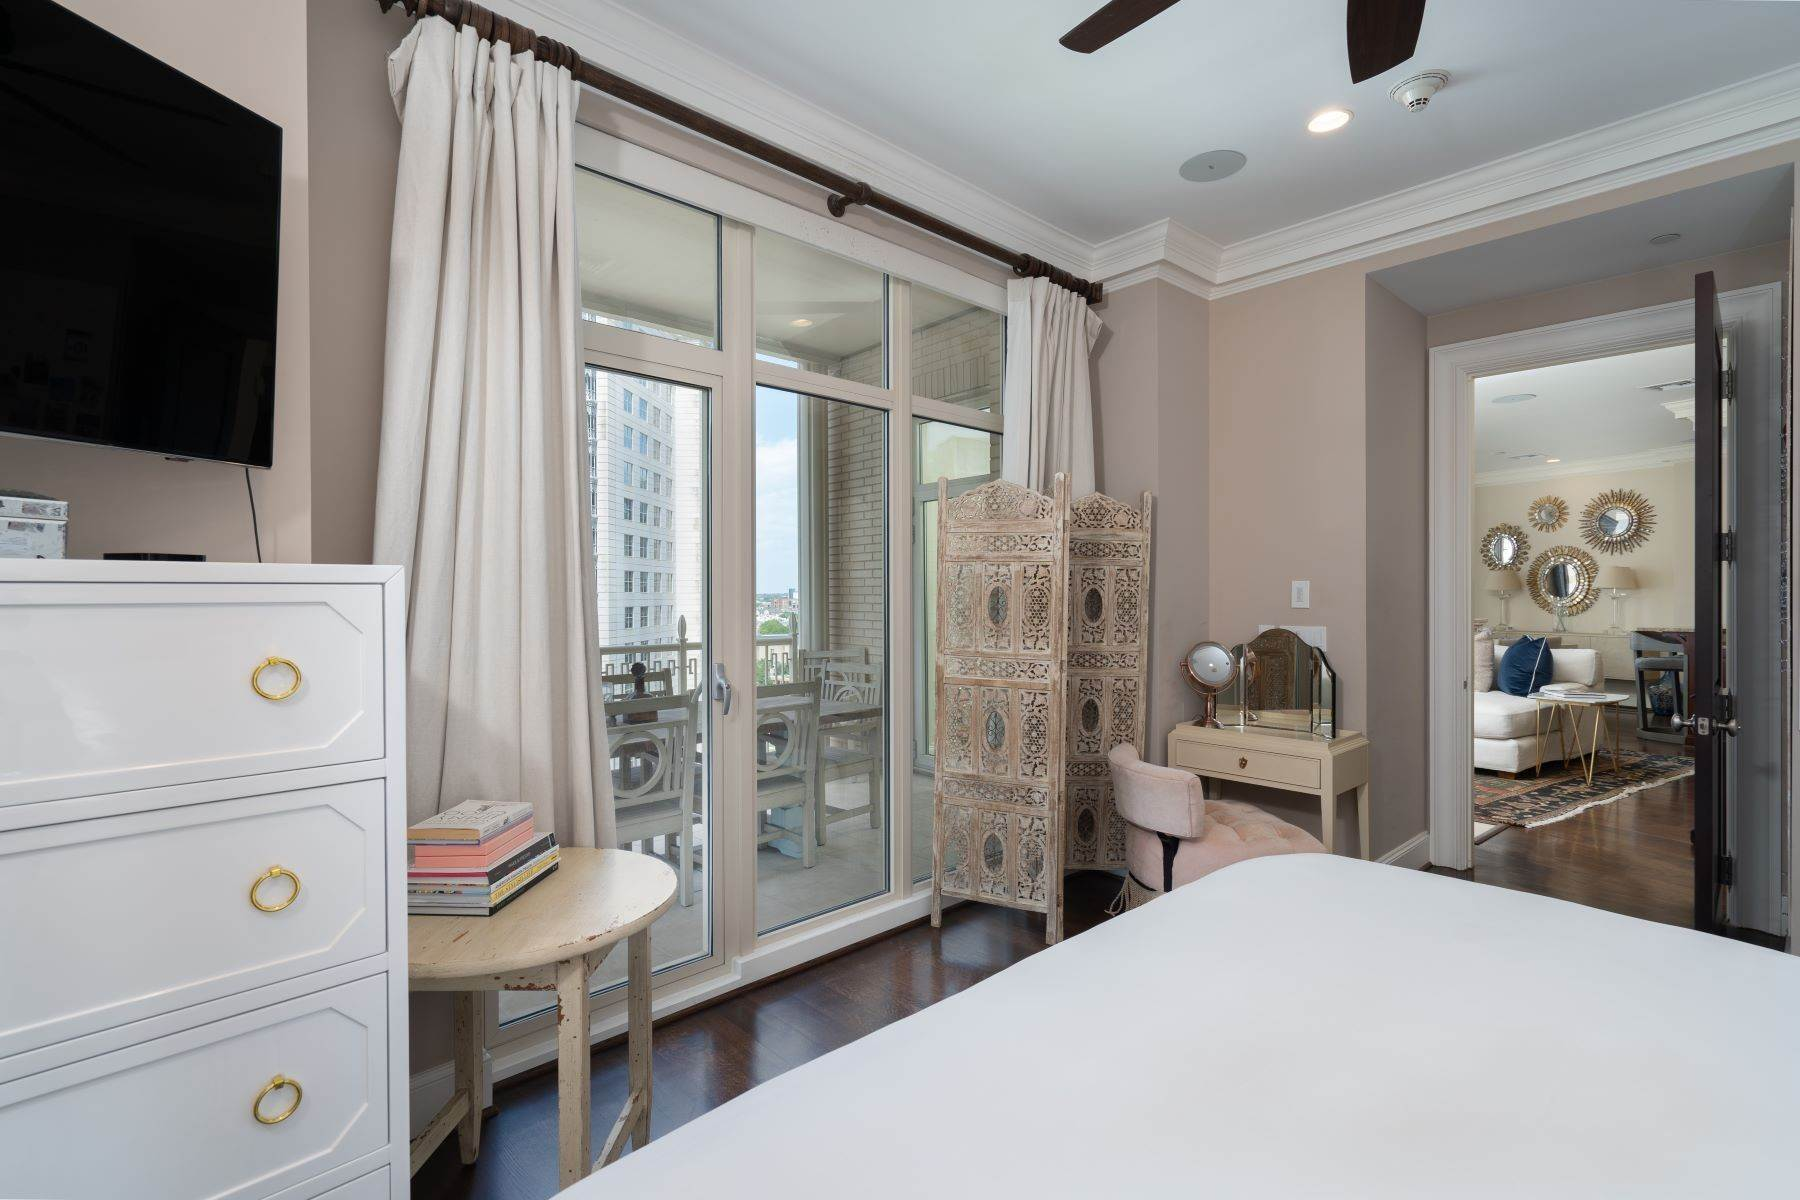 21. Condominiums for Sale at Ritz-Carlton Luxury and Convenience 2555 N. Pearl Street, #1004 Dallas, Texas 75201 United States